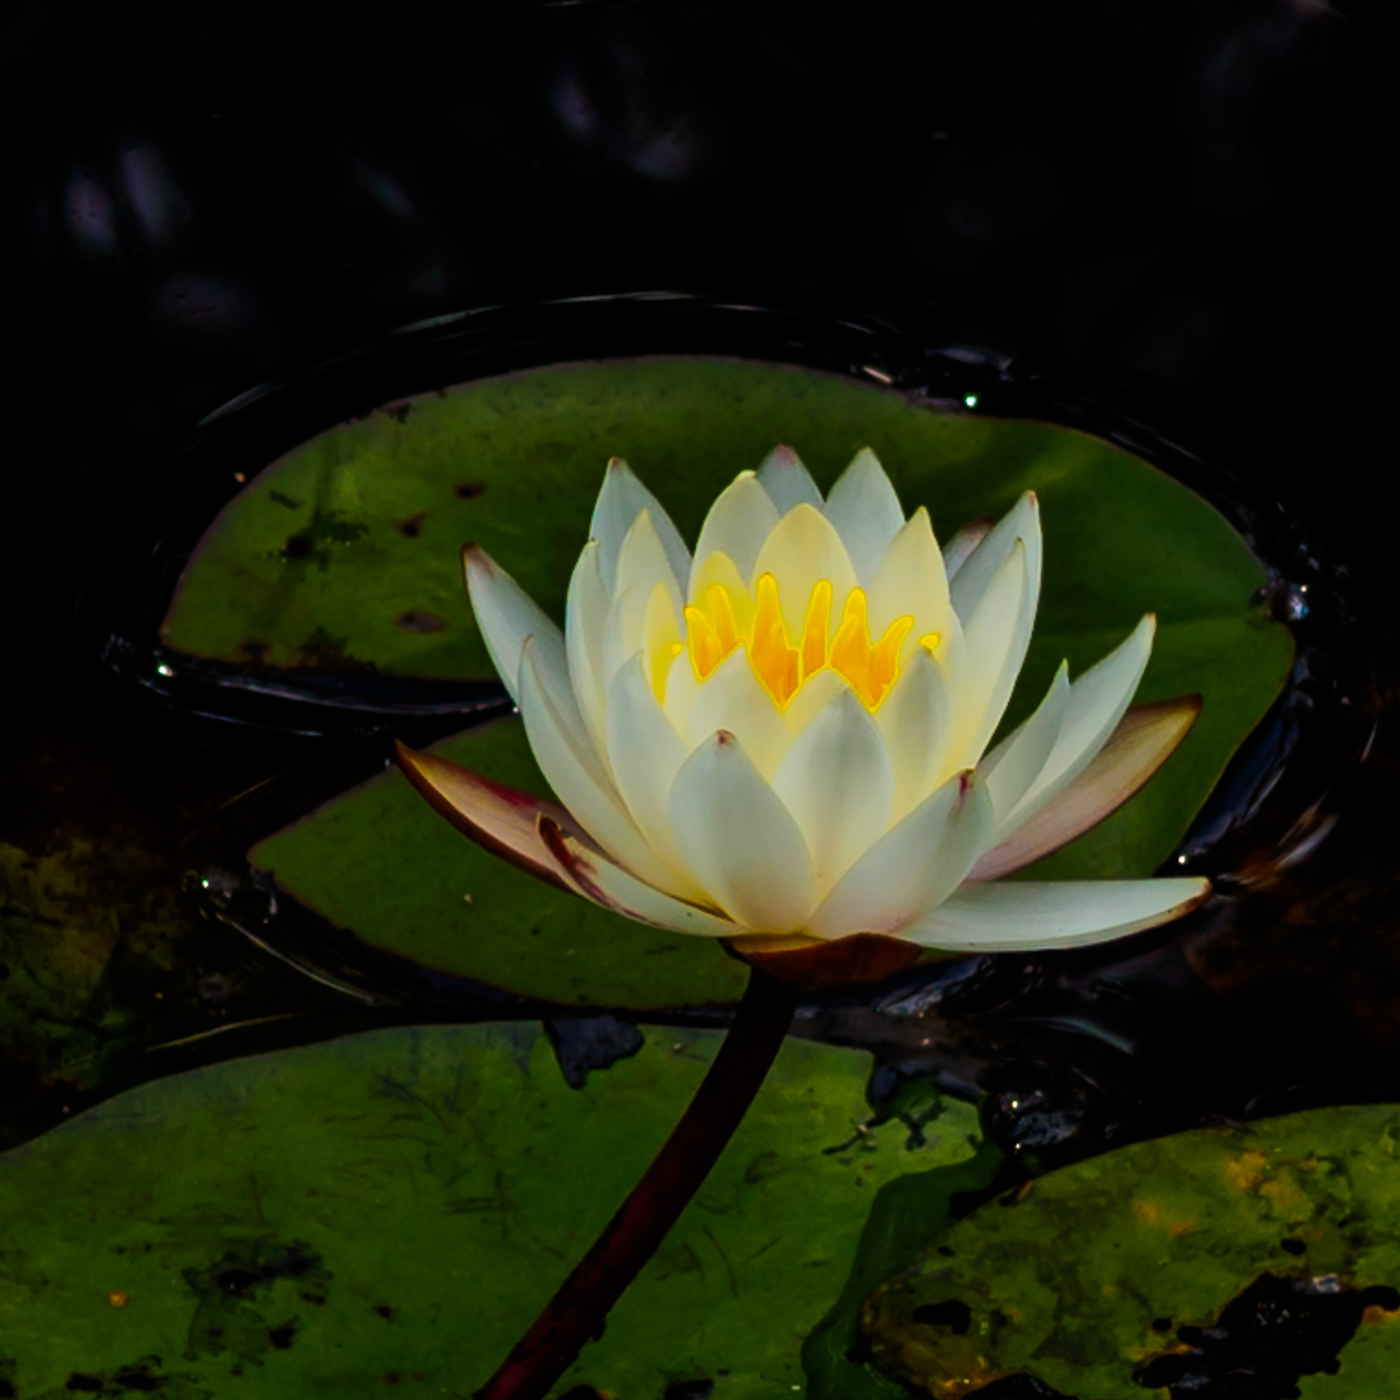 waterlily-white-8270013